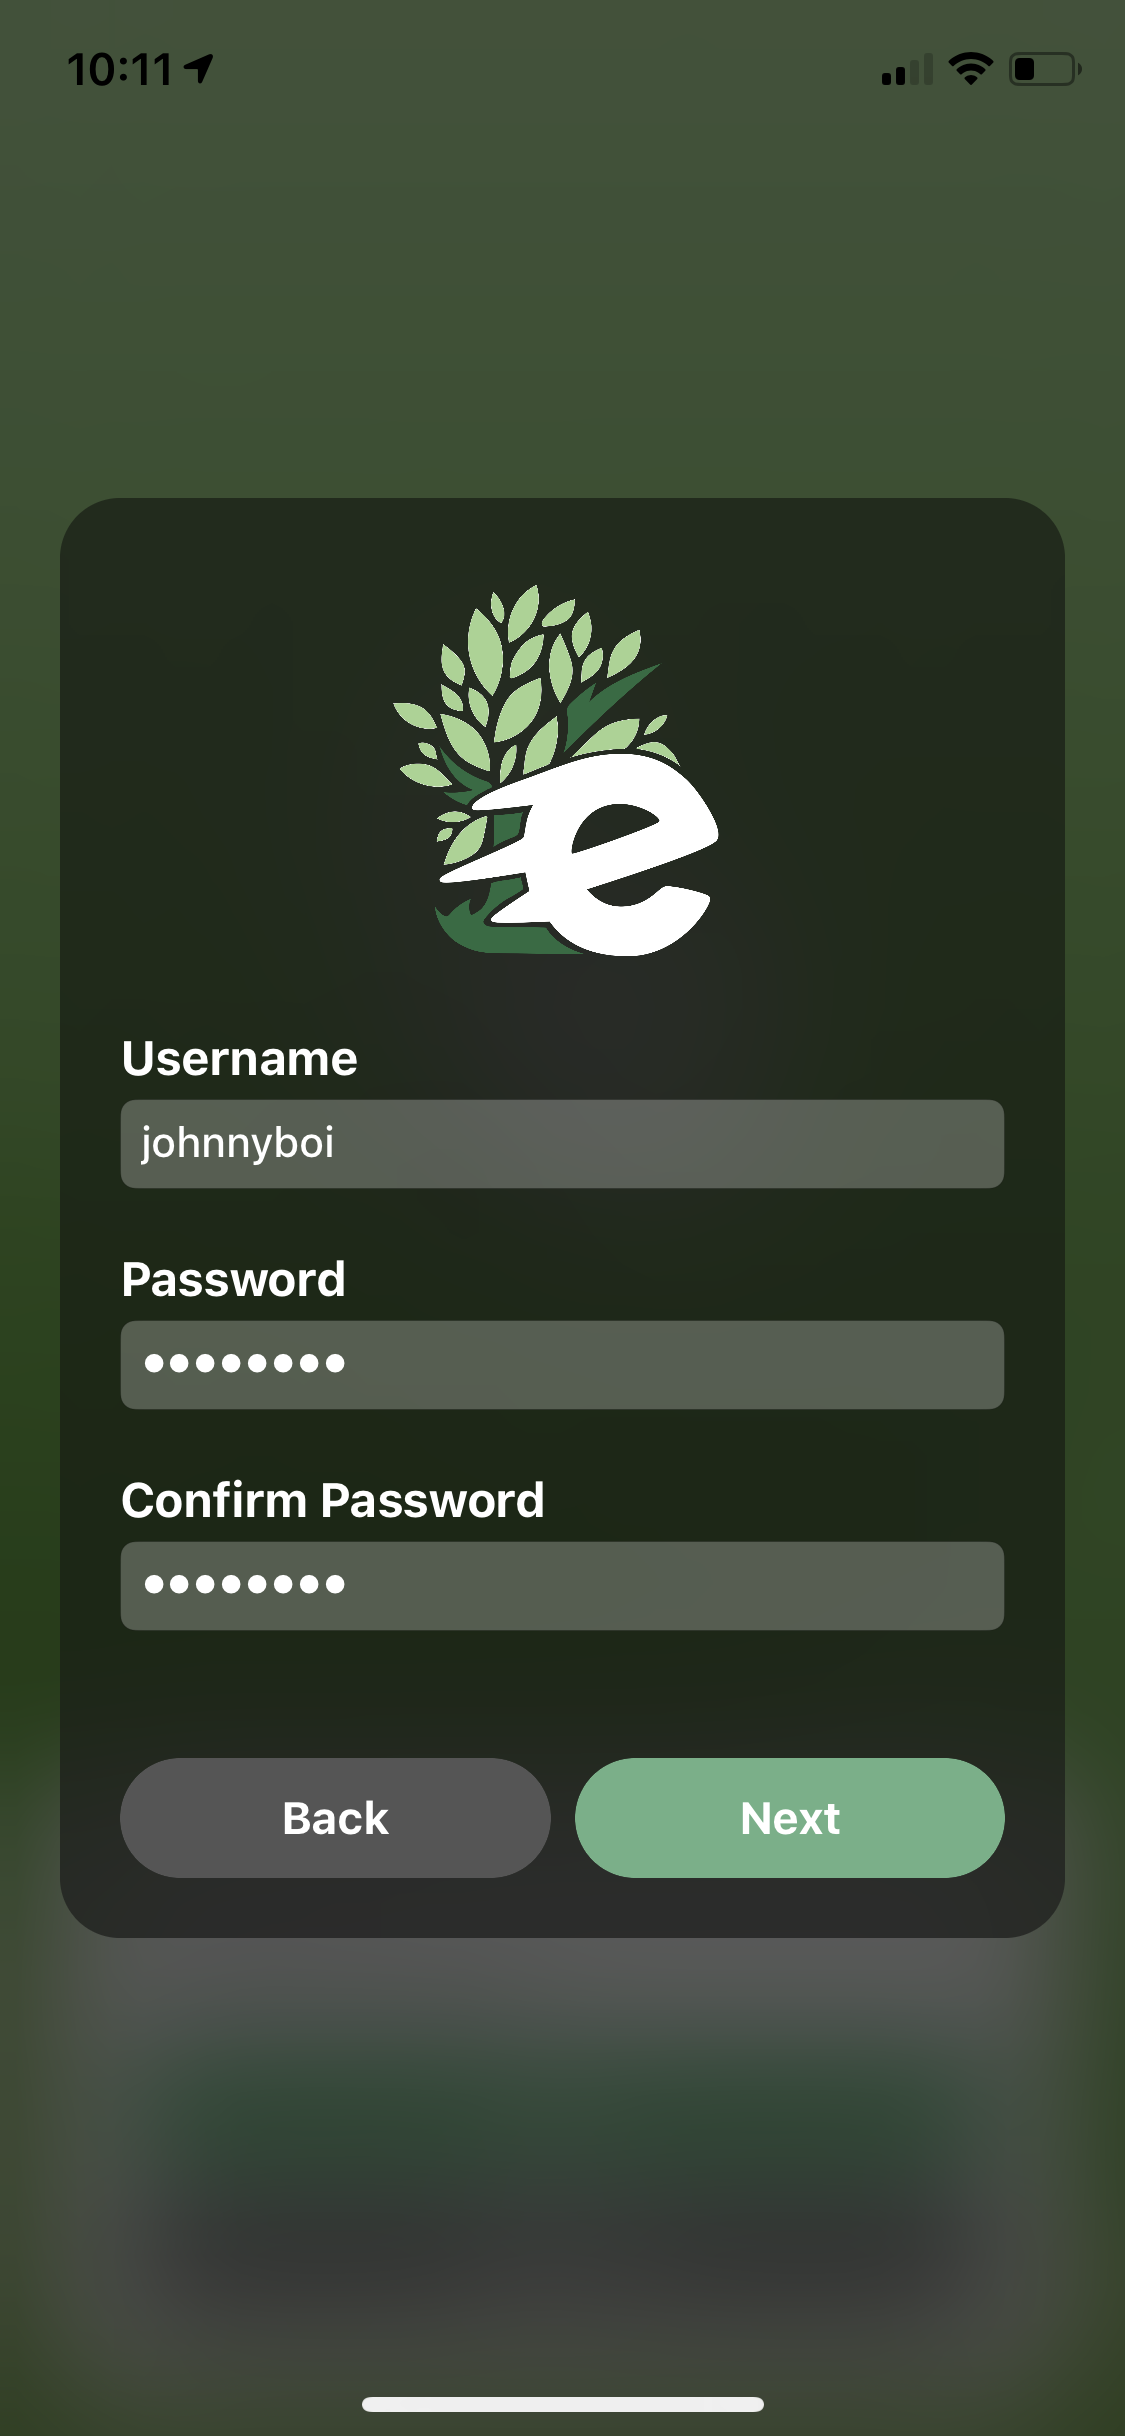 create a unique username and password, your friends will see your username when you share or create a challenge!